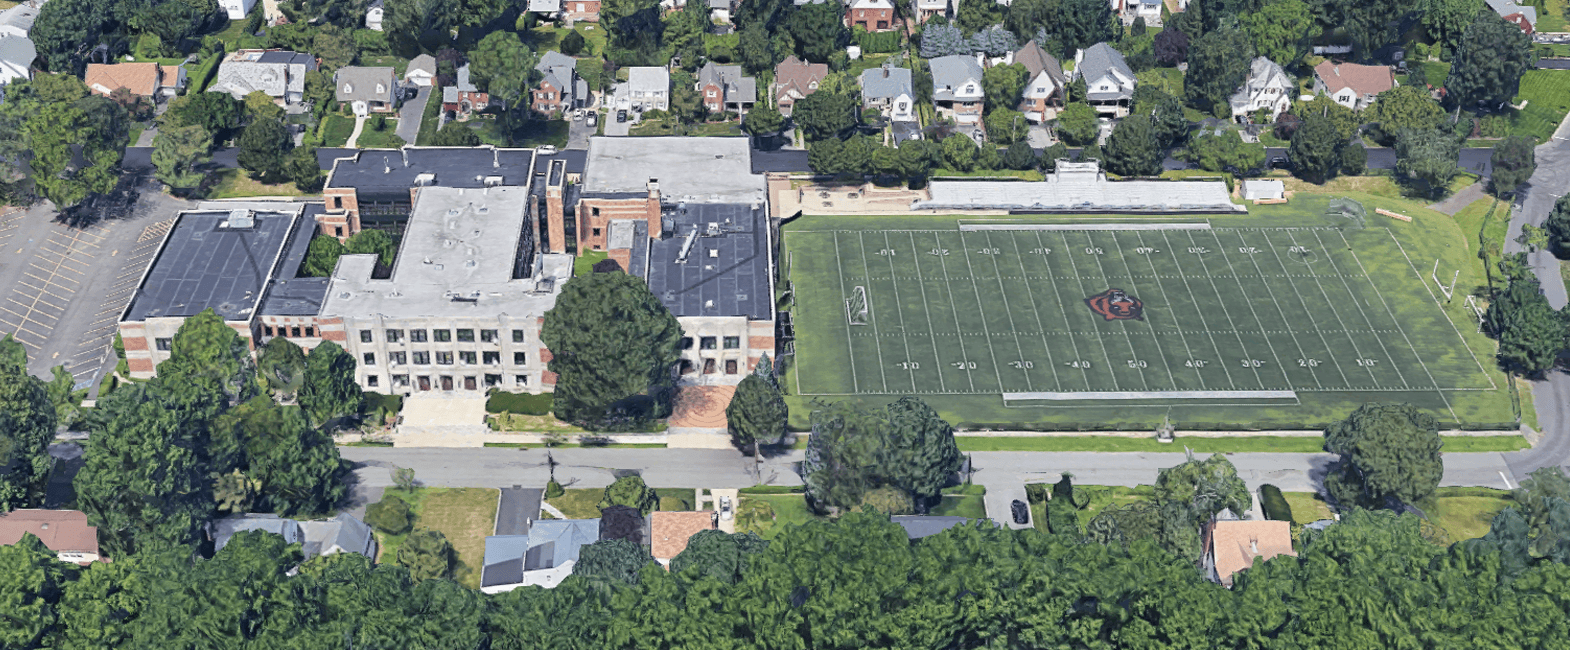 Tuckahoe Middle and High School Campus in Eastchester, New York